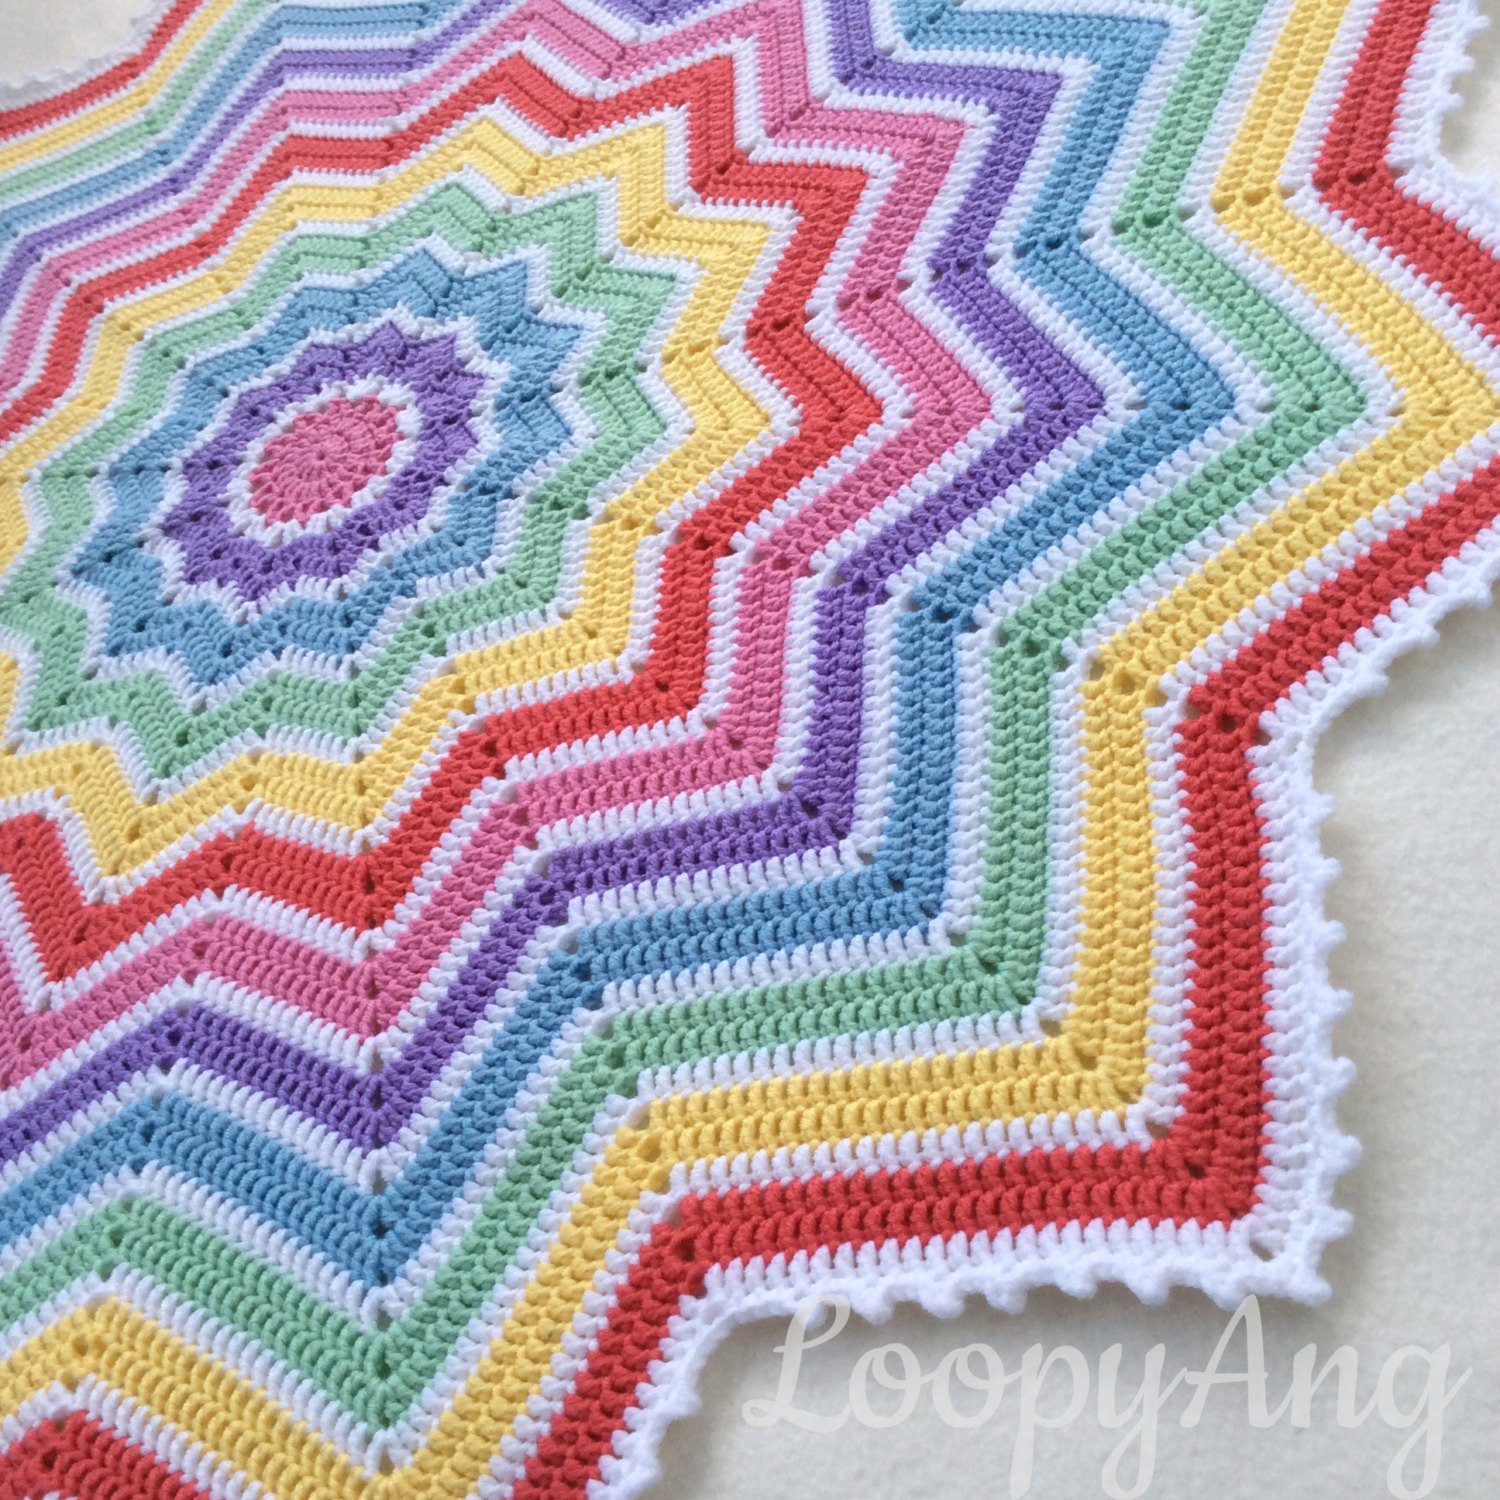 Elegant Crochet Rainbow Baby Blanket 12 Pointed Star Afghan Crochet Star Blanket Of Superb 49 Images Crochet Star Blanket